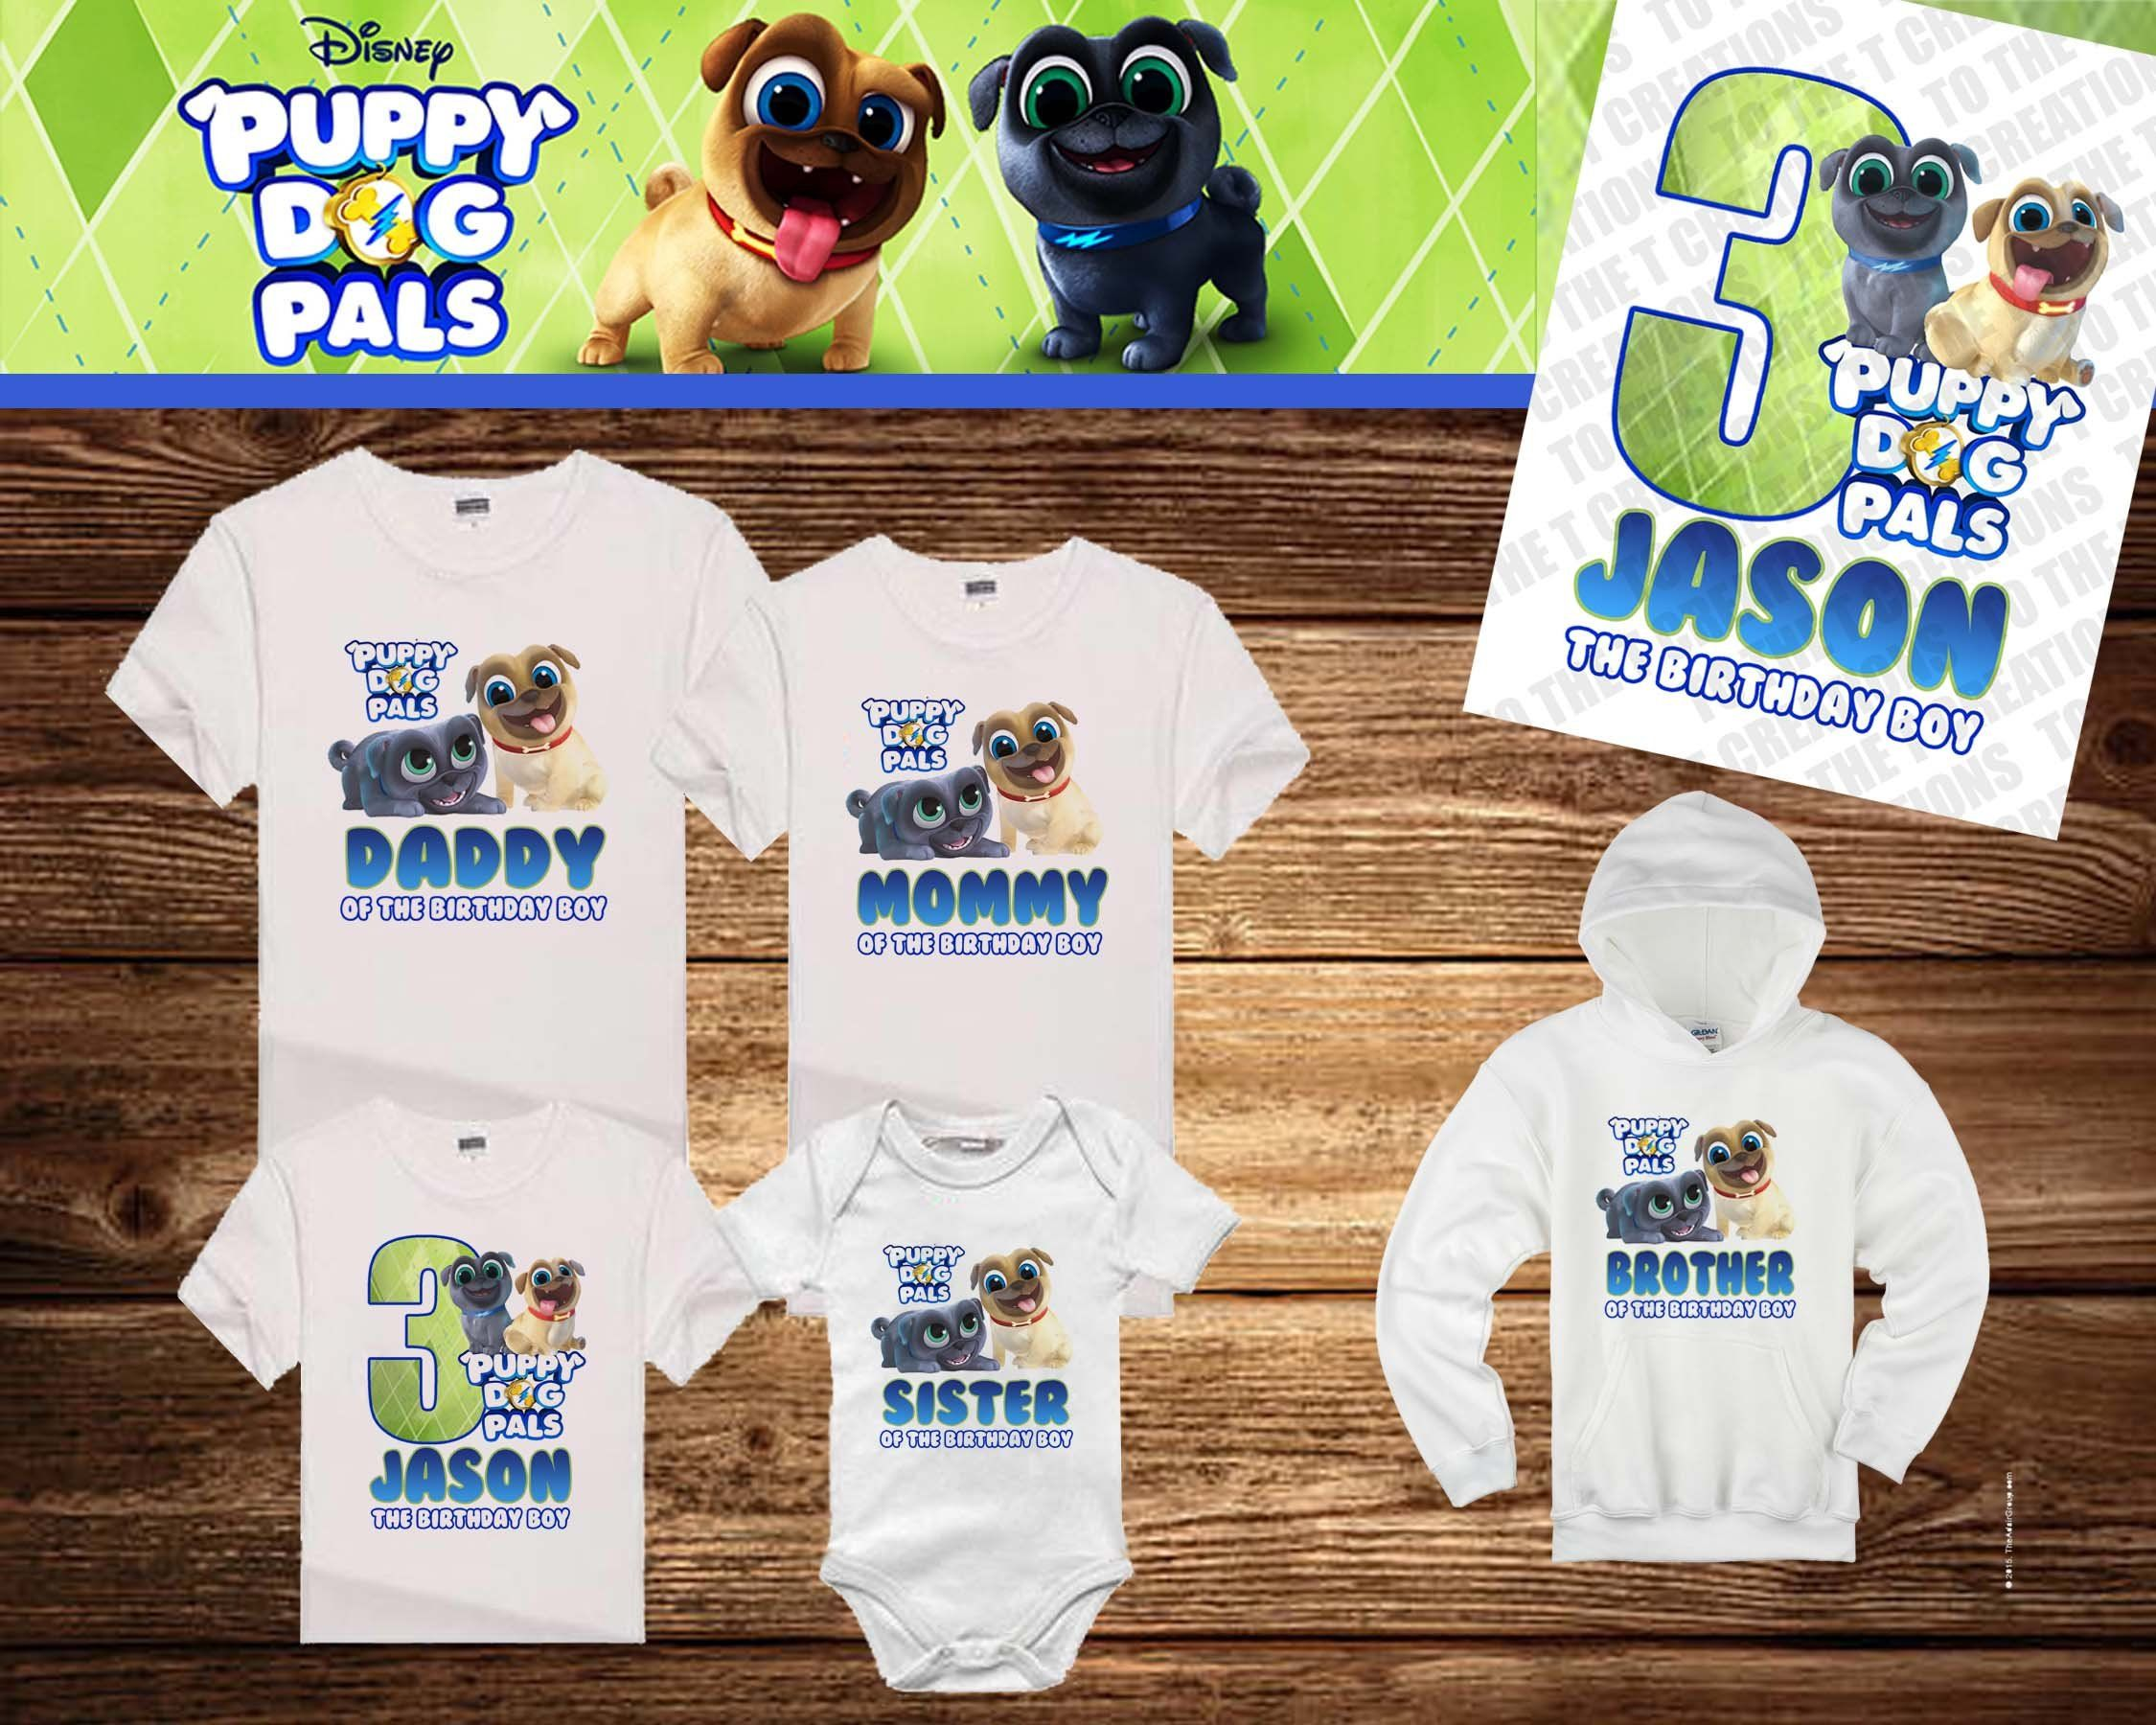 Puppy Dog Pals Personalized Birthday Shirt Tshirt Onesie Mom Dad Sister Brother Personalized Birthday Shirts Birthday Shirts Personalized Birthday